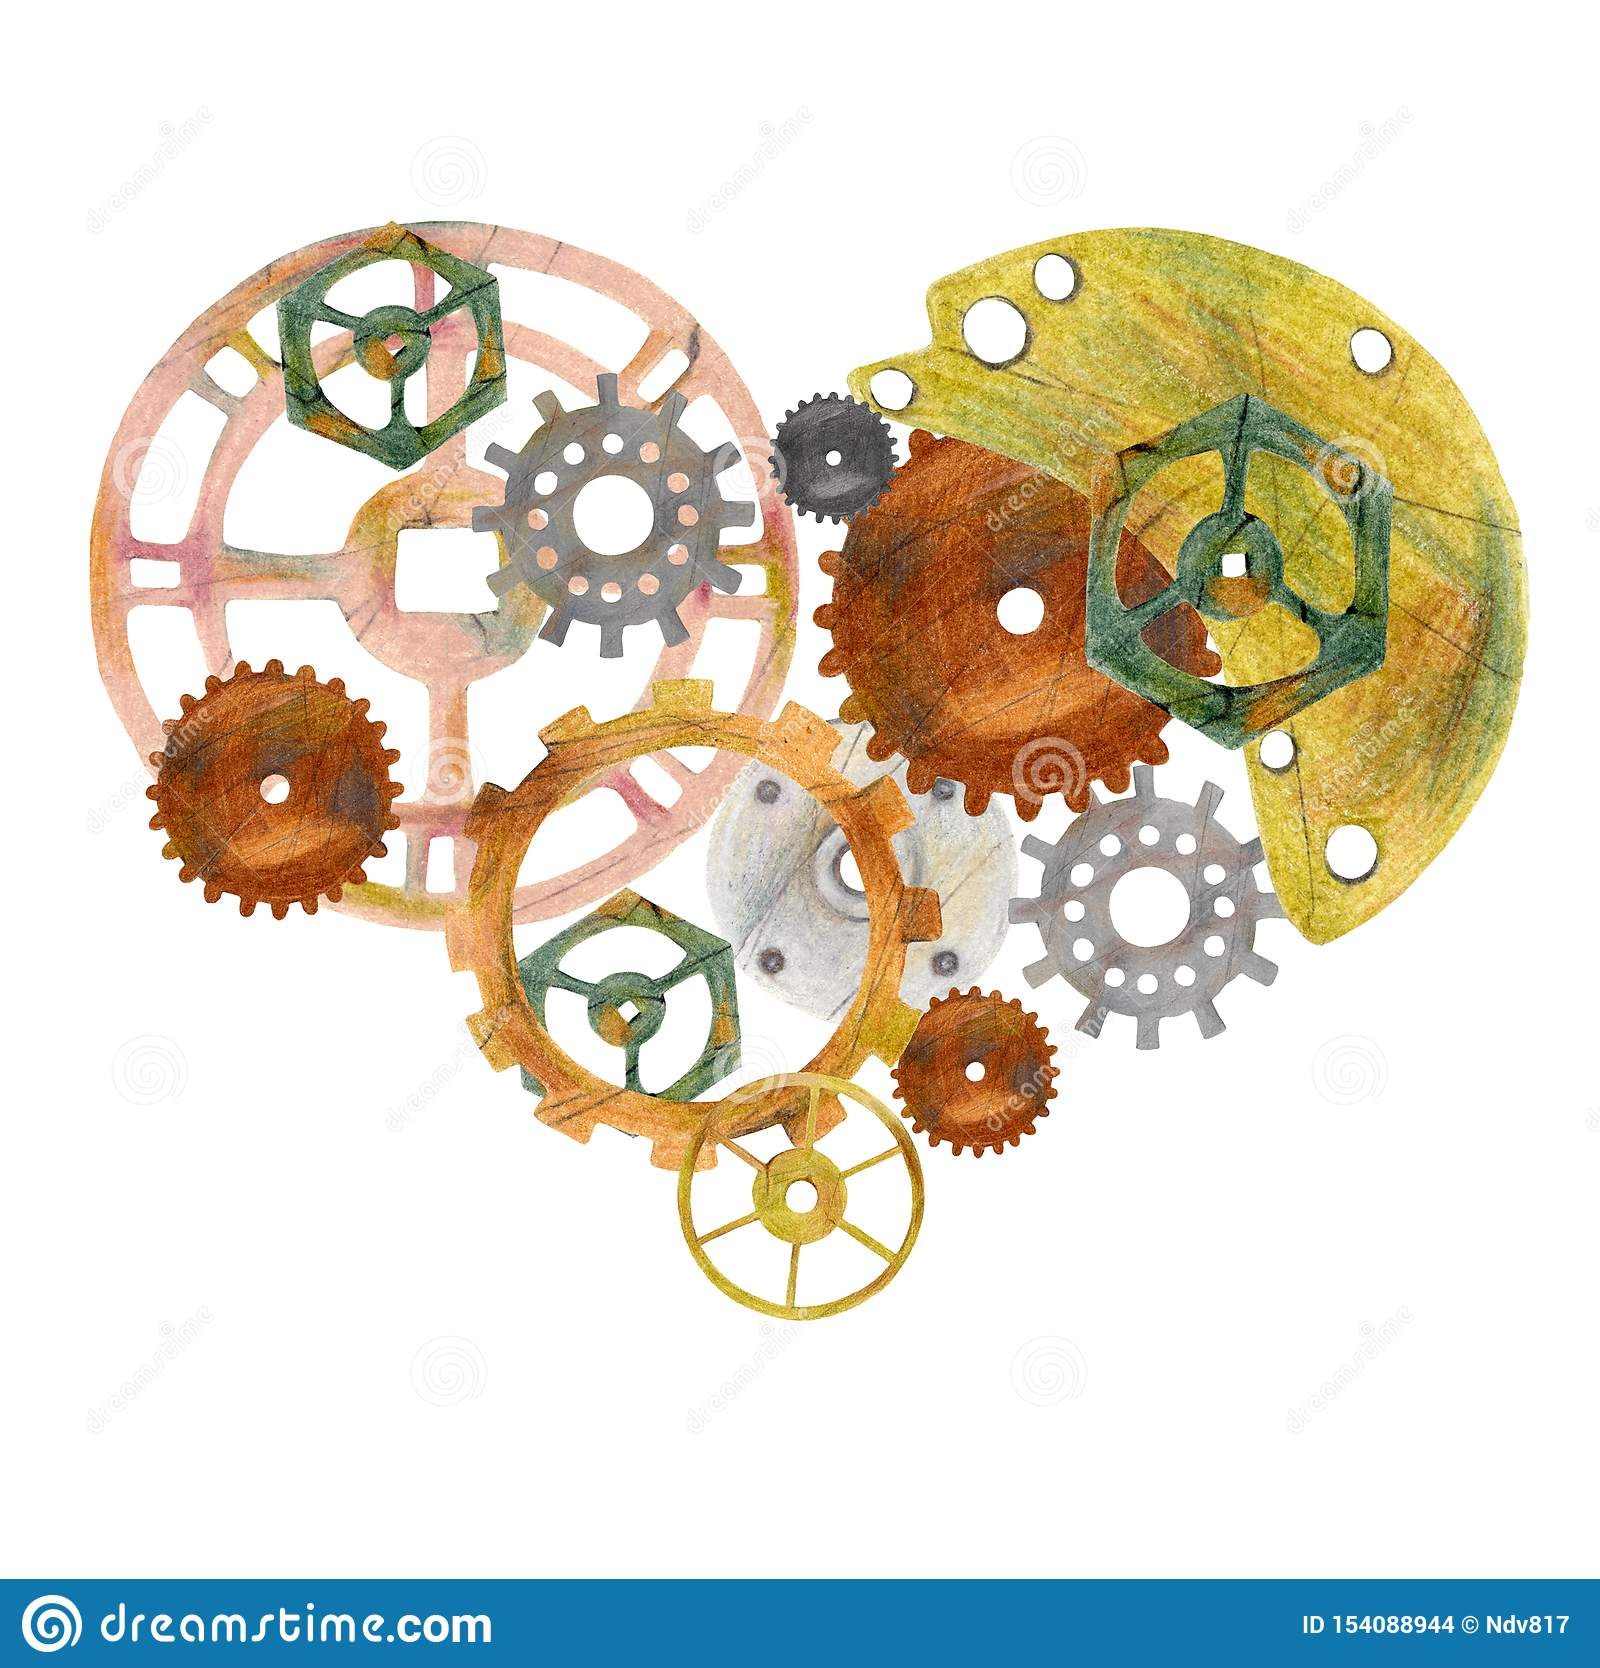 Steampunk vintage heart with cogs, gears and ventils.